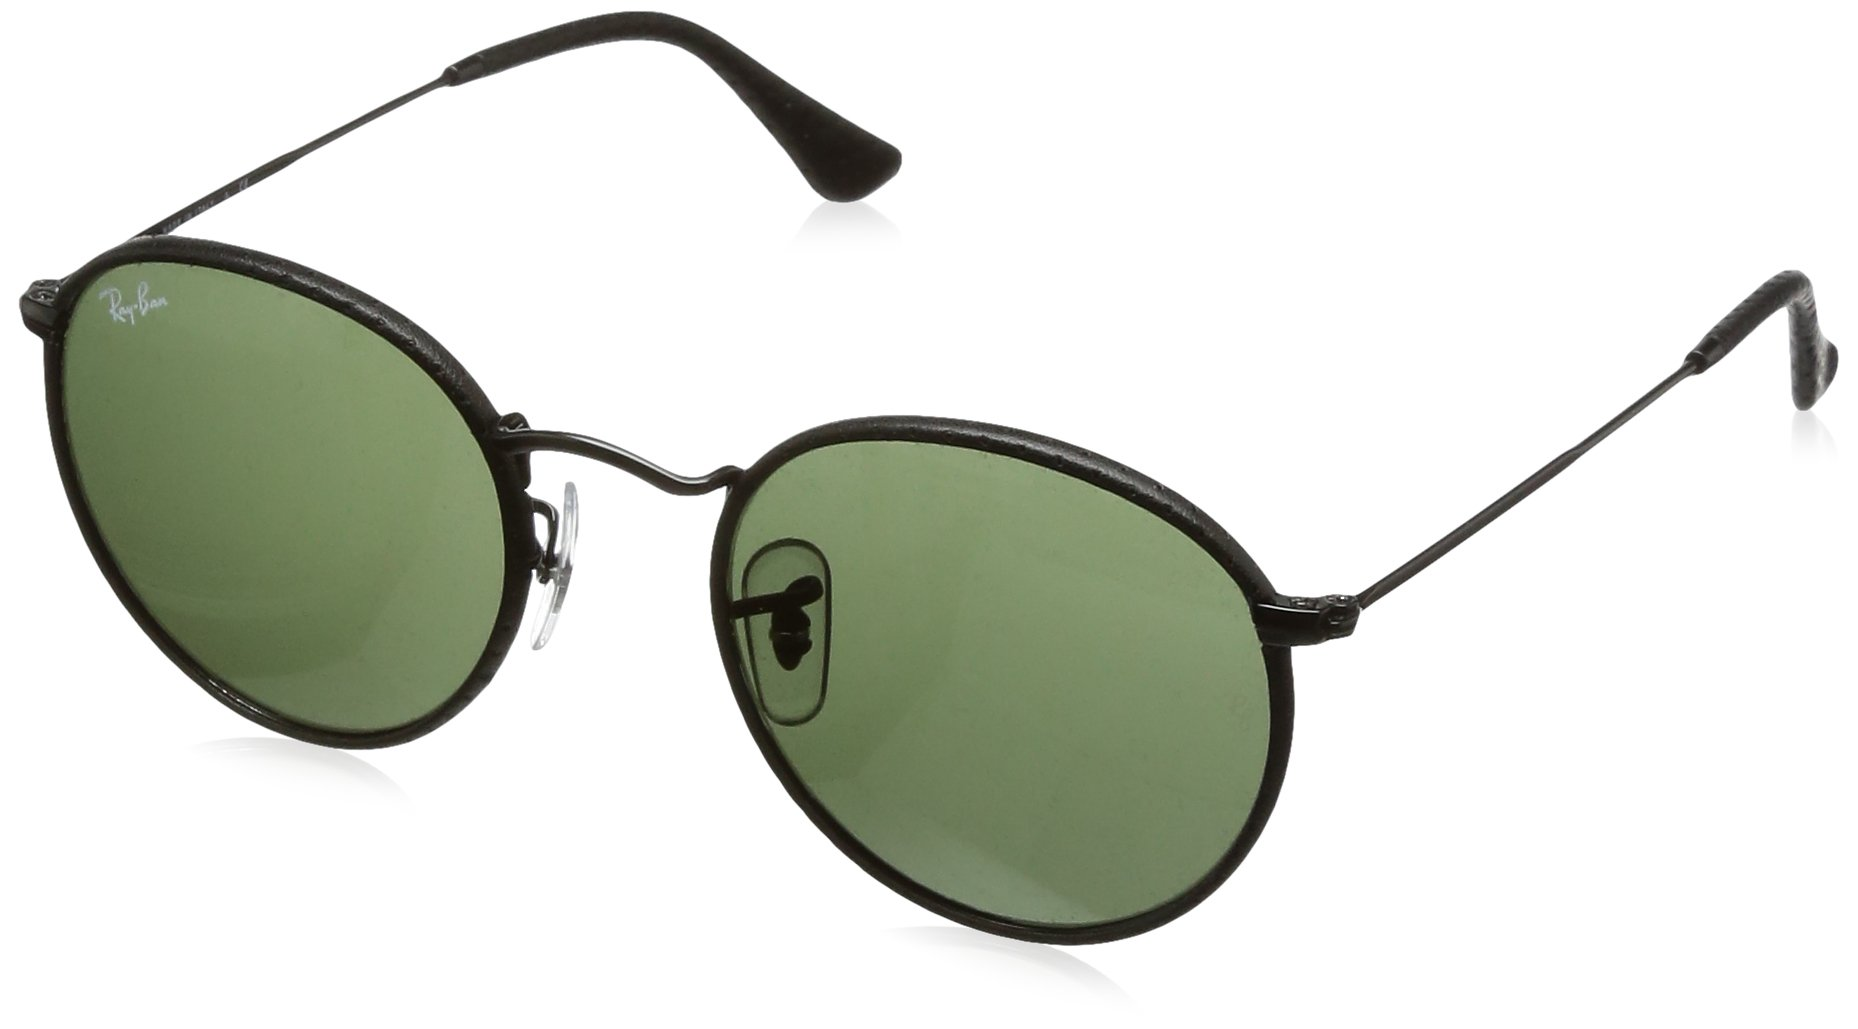 Ray-Ban Women's Phantos Round Leather Sunglasses, Black/Crystal Green, One Size by Ray-Ban